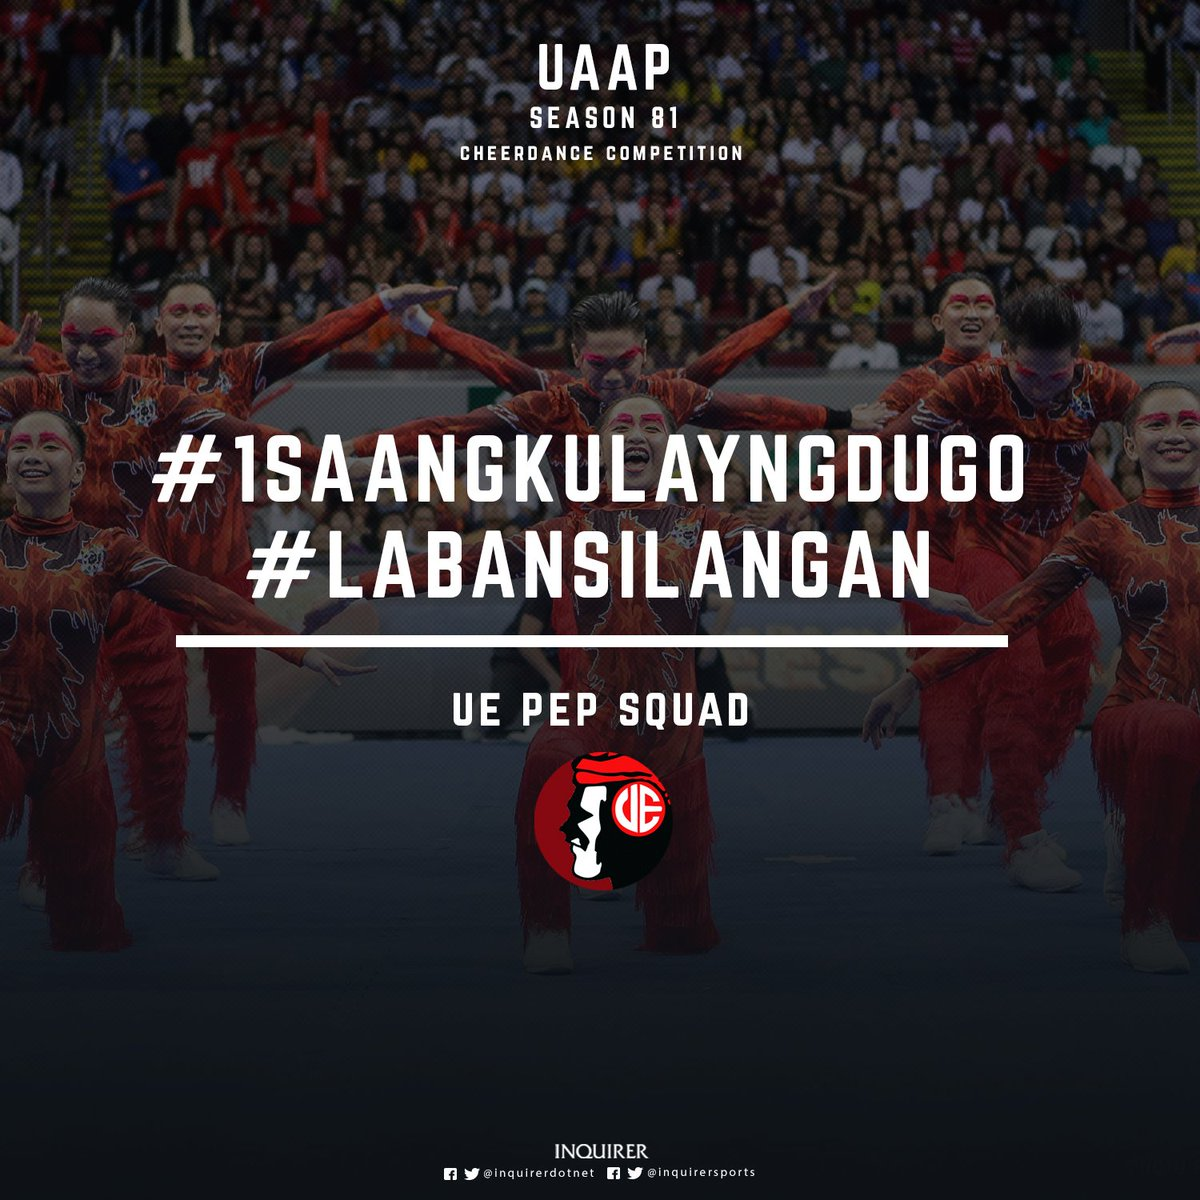 First performer of #UAAPCDC2018: UE Pep Squad! #1saAngKulayNgDugo, #LabanSilangan